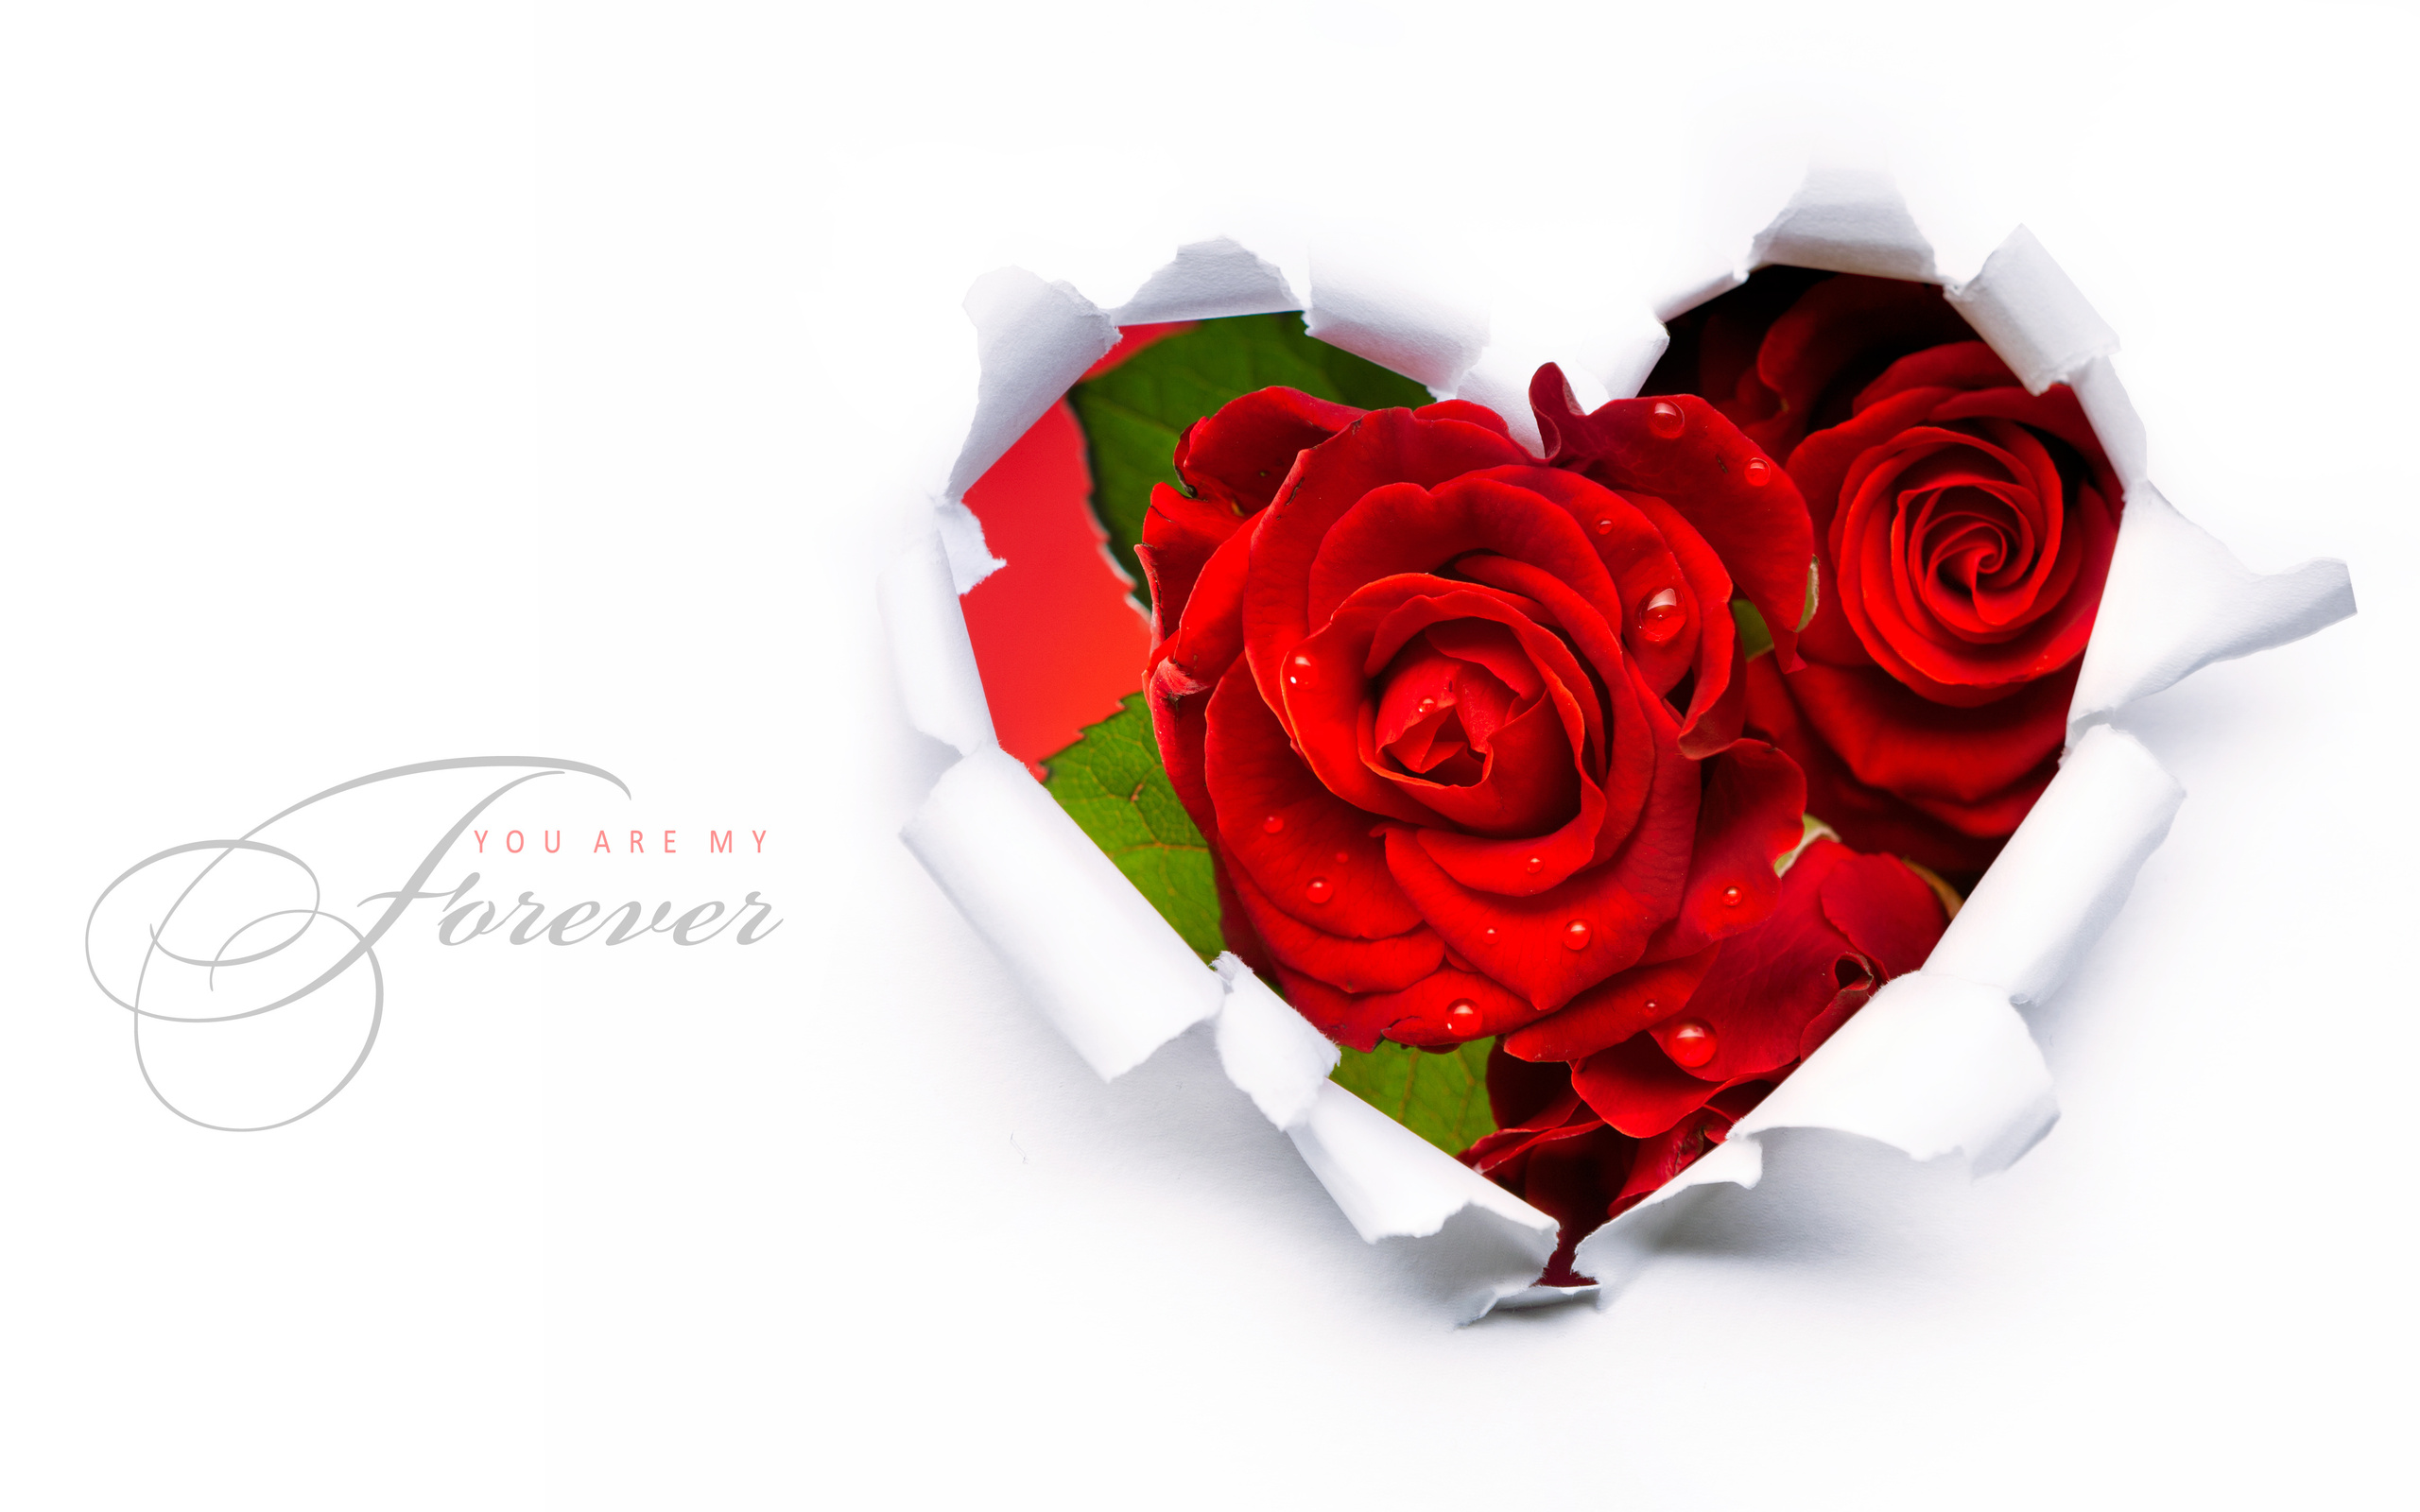 Red roses in a heart shape 2560 x 1600 download close